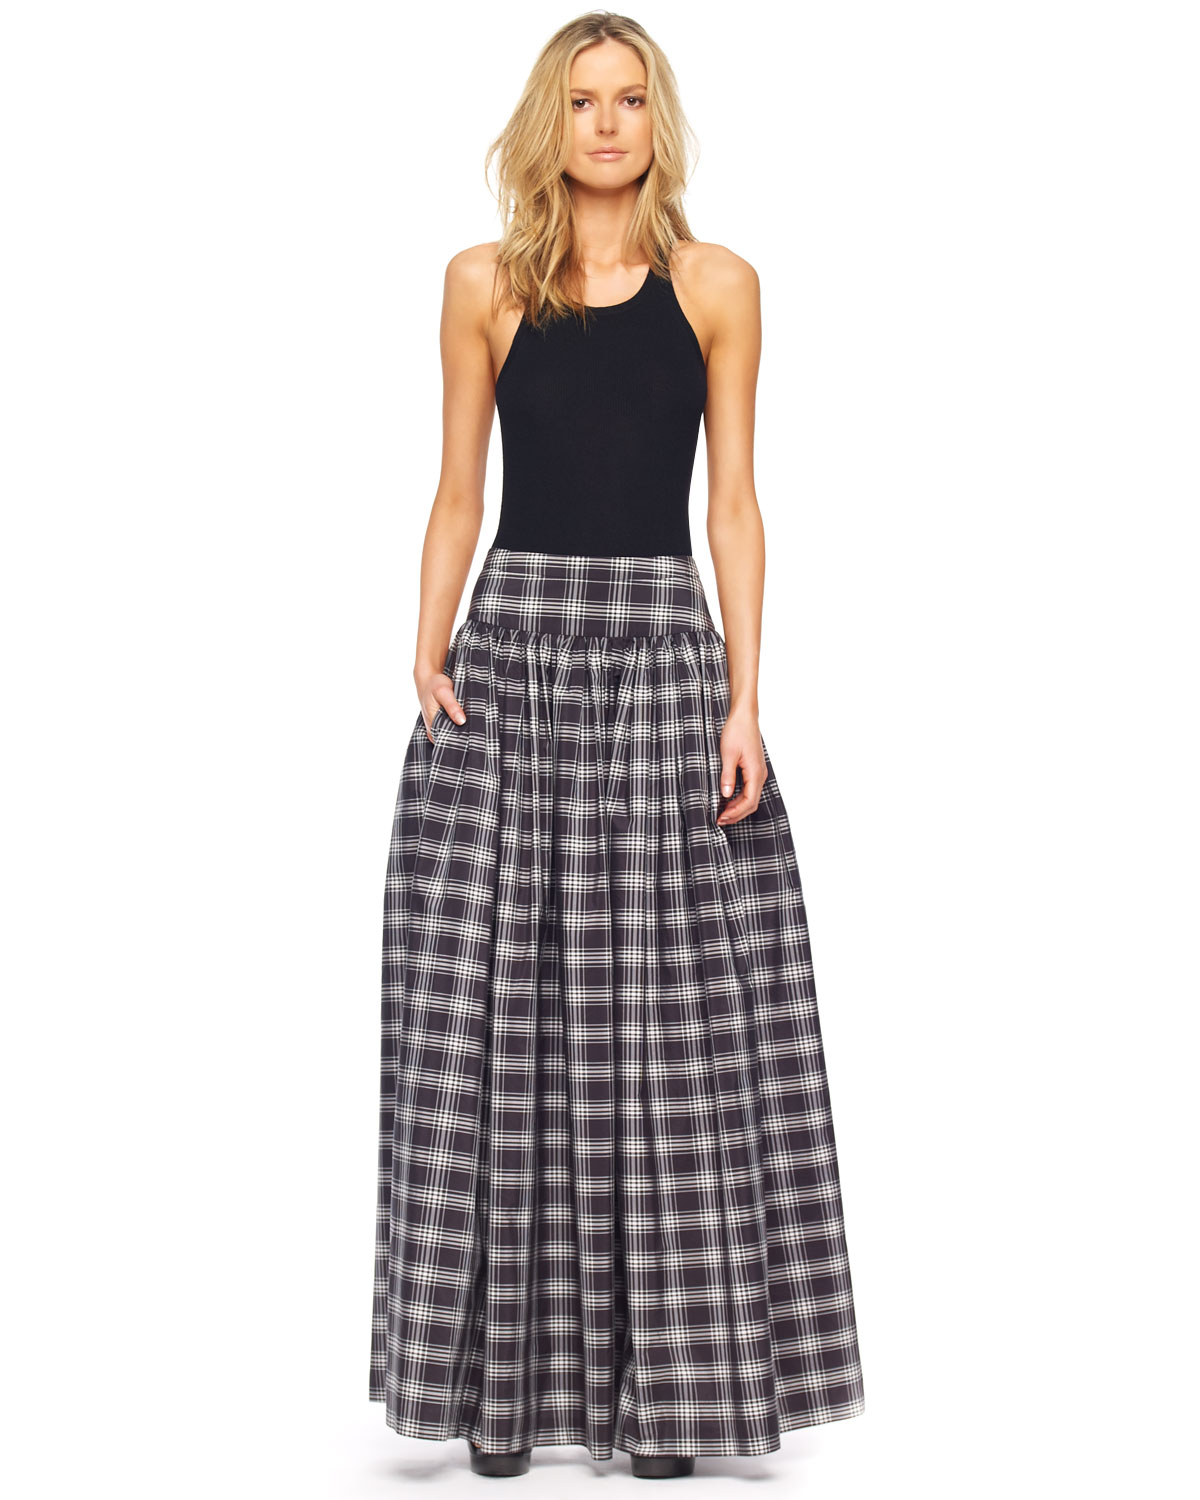 Michael kors Taos Plaid Taffeta Maxi Skirt in Black | Lyst